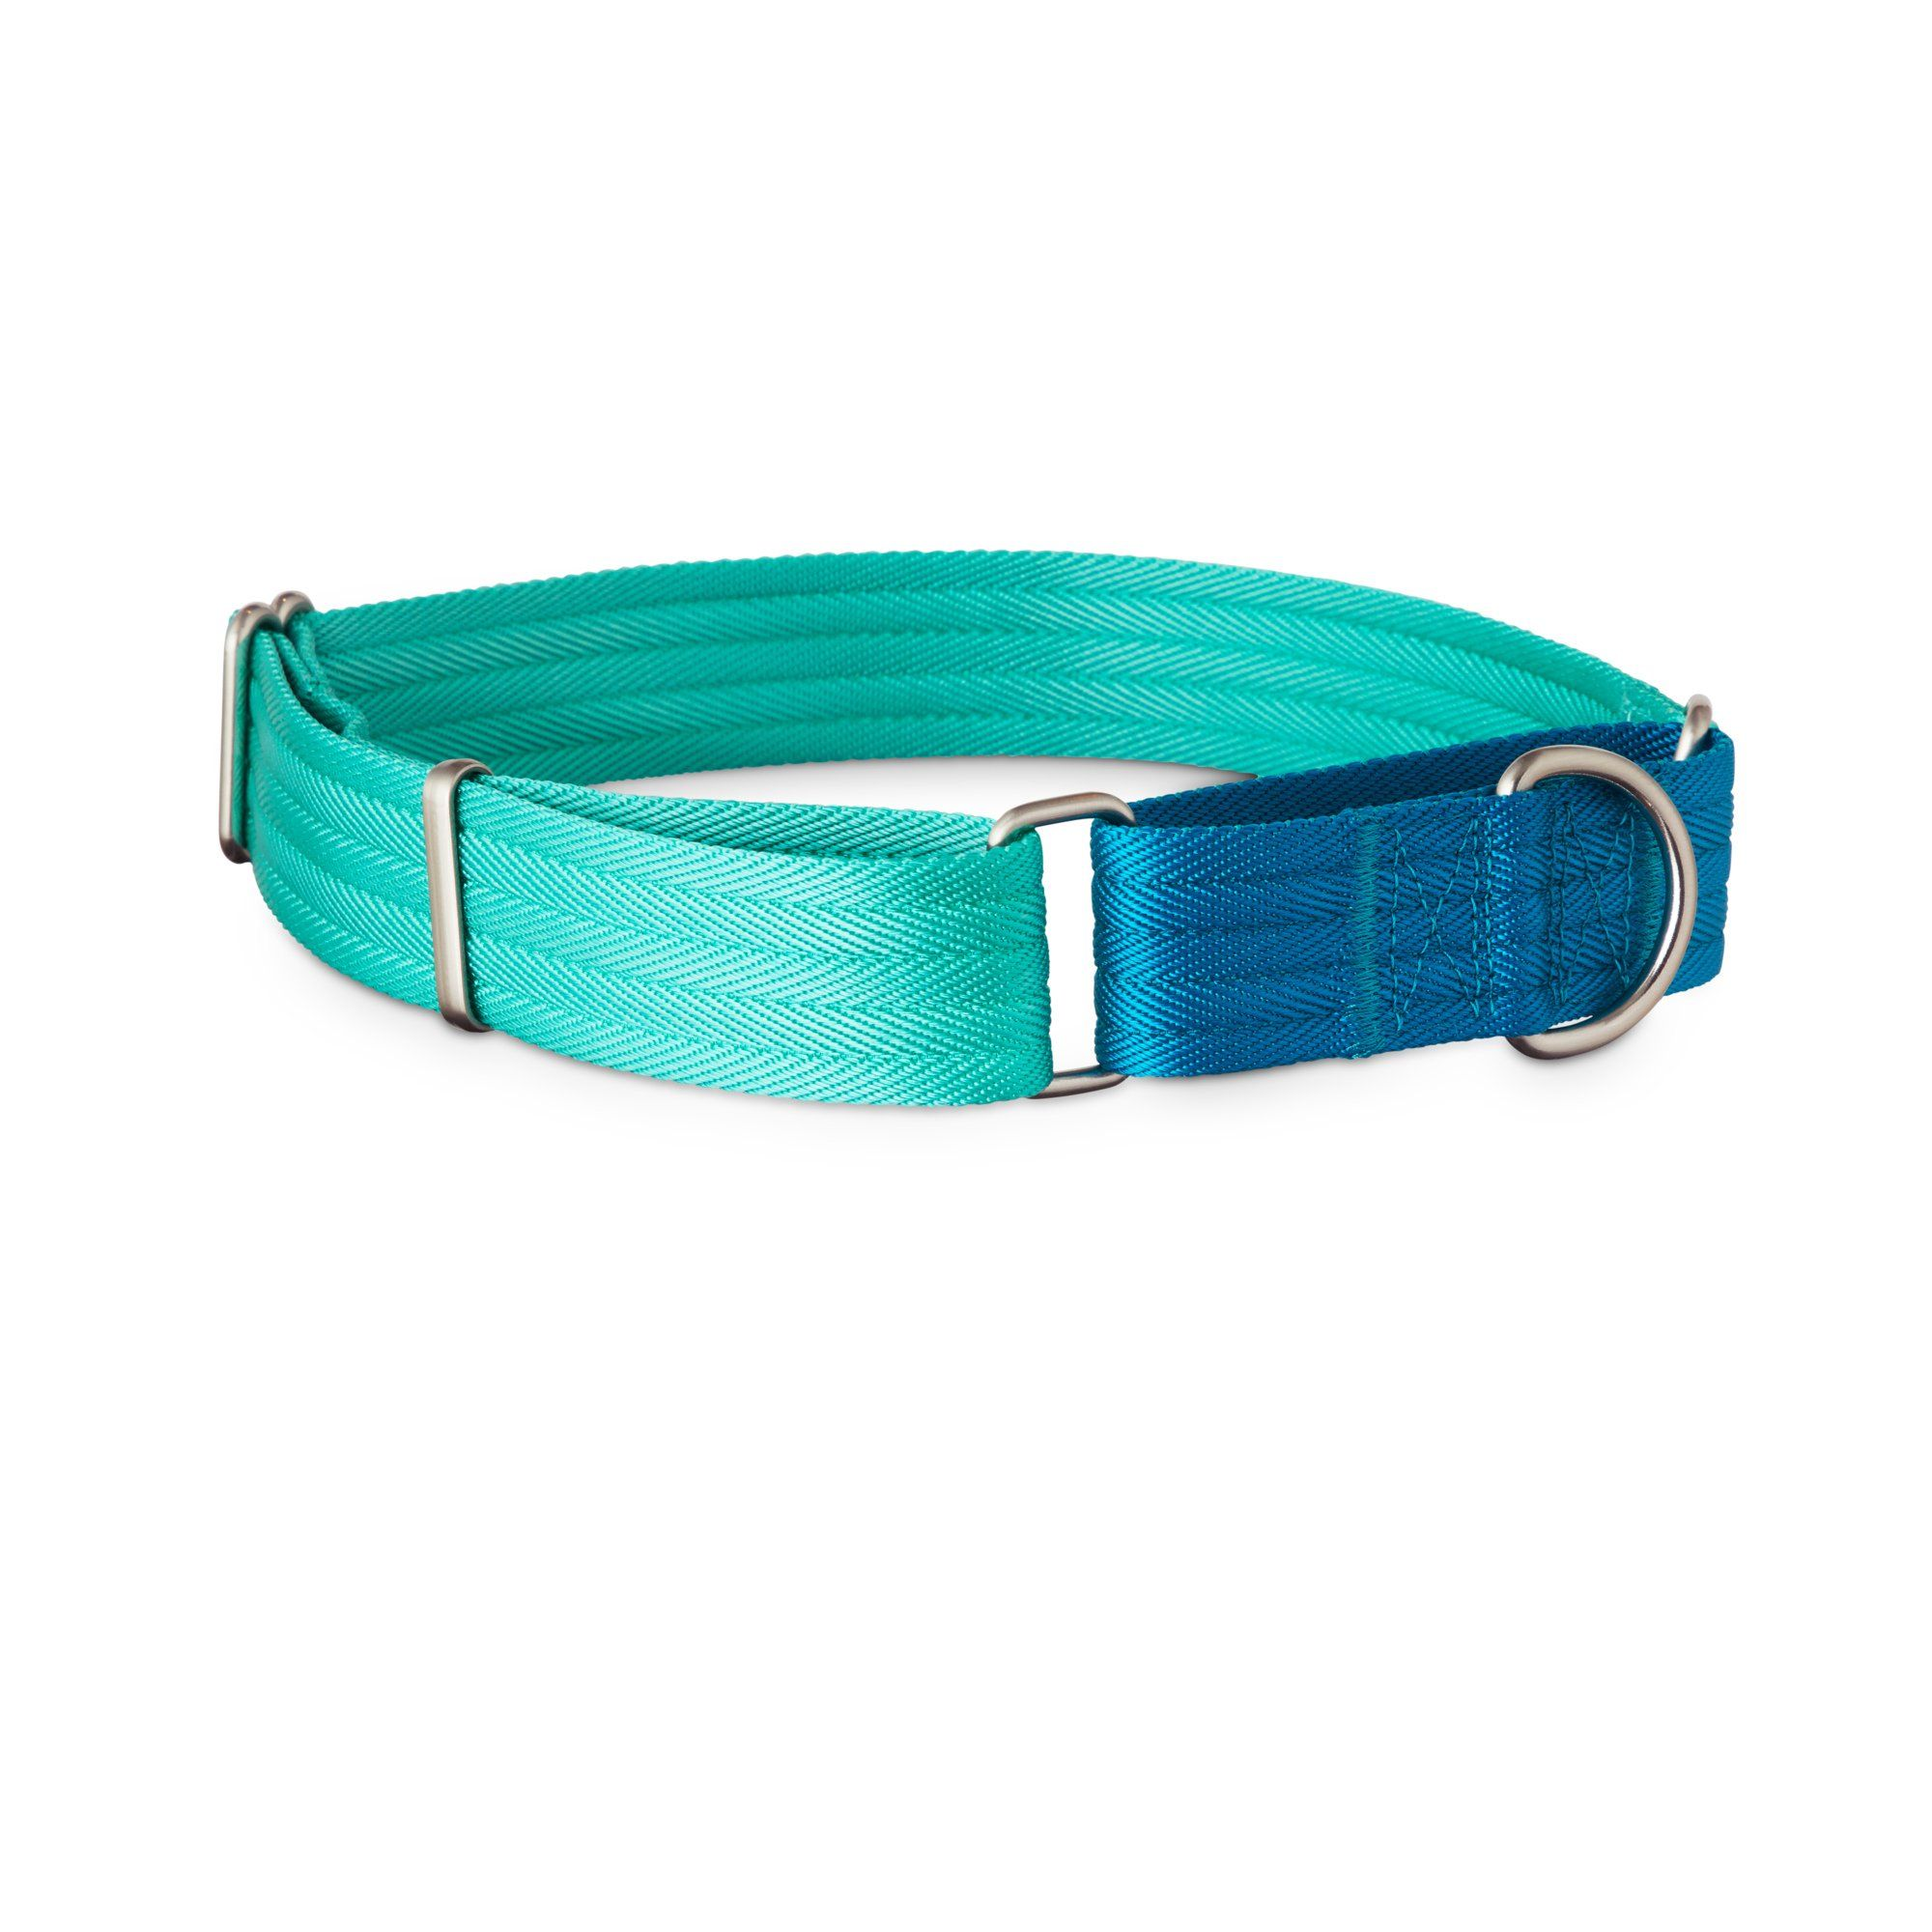 Good2go Teal And Blue Two Tone Martingale Dog Collar Large